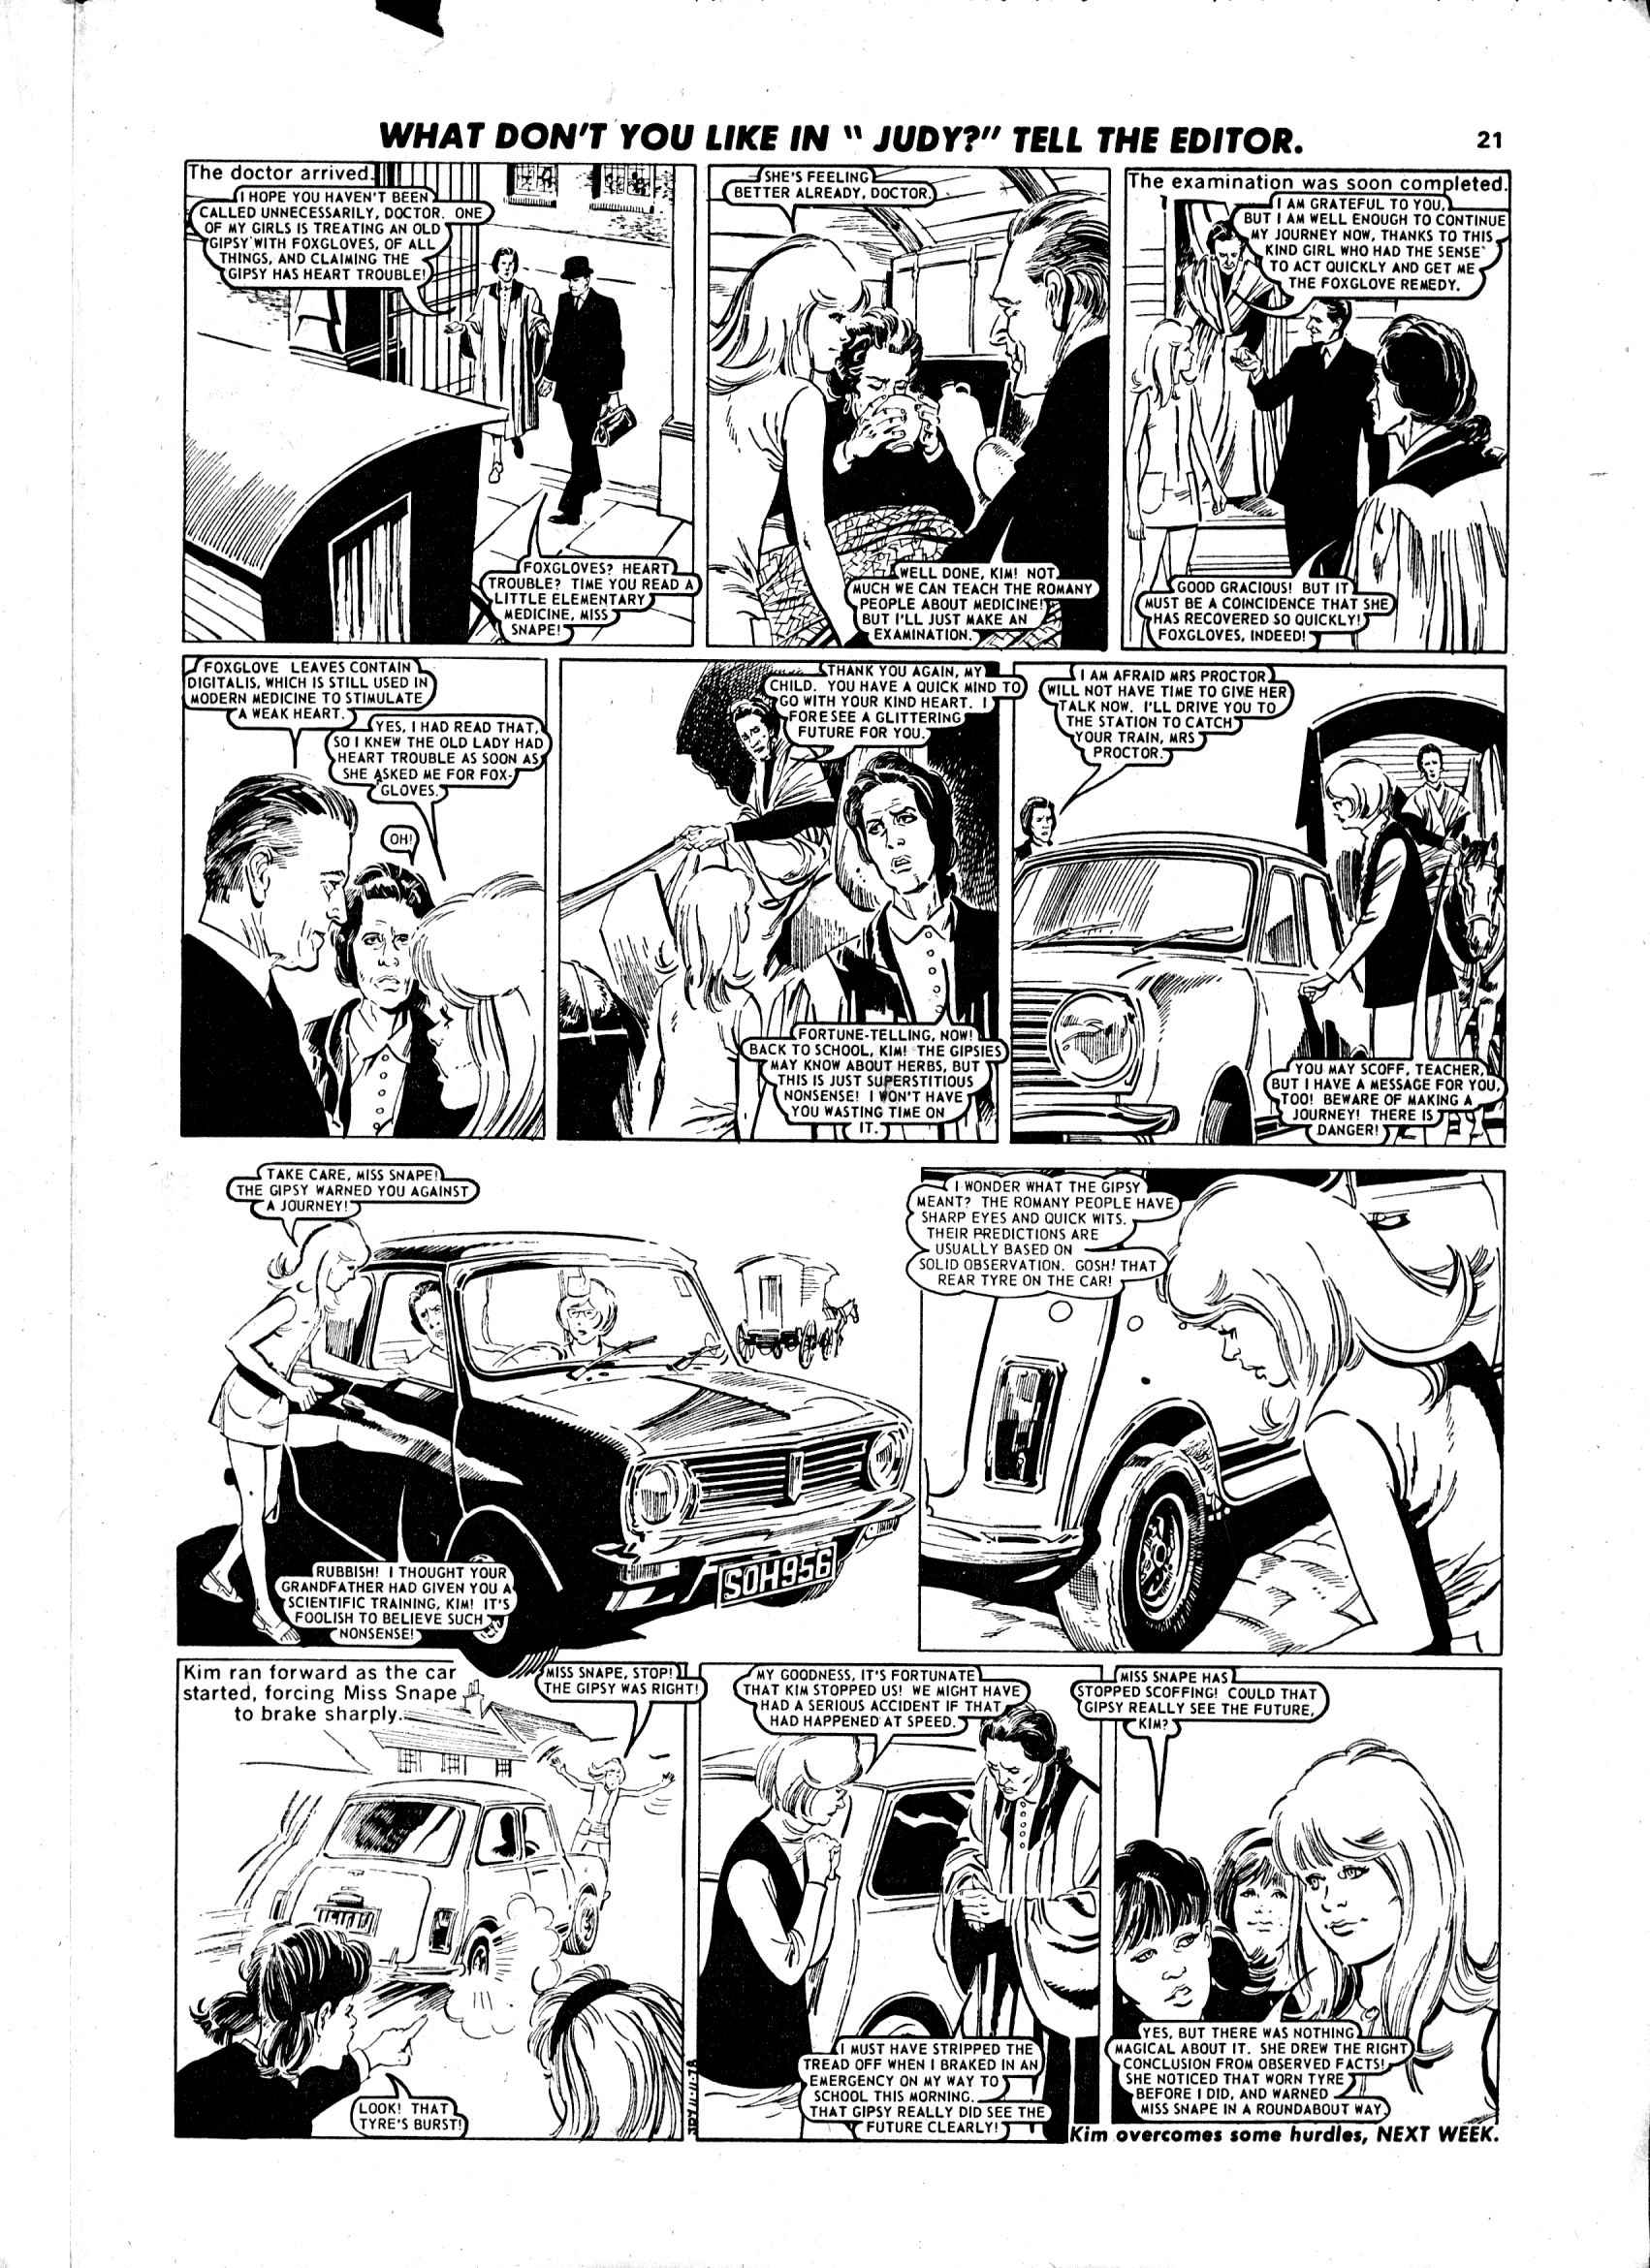 Read online Judy comic -  Issue #983 - 21